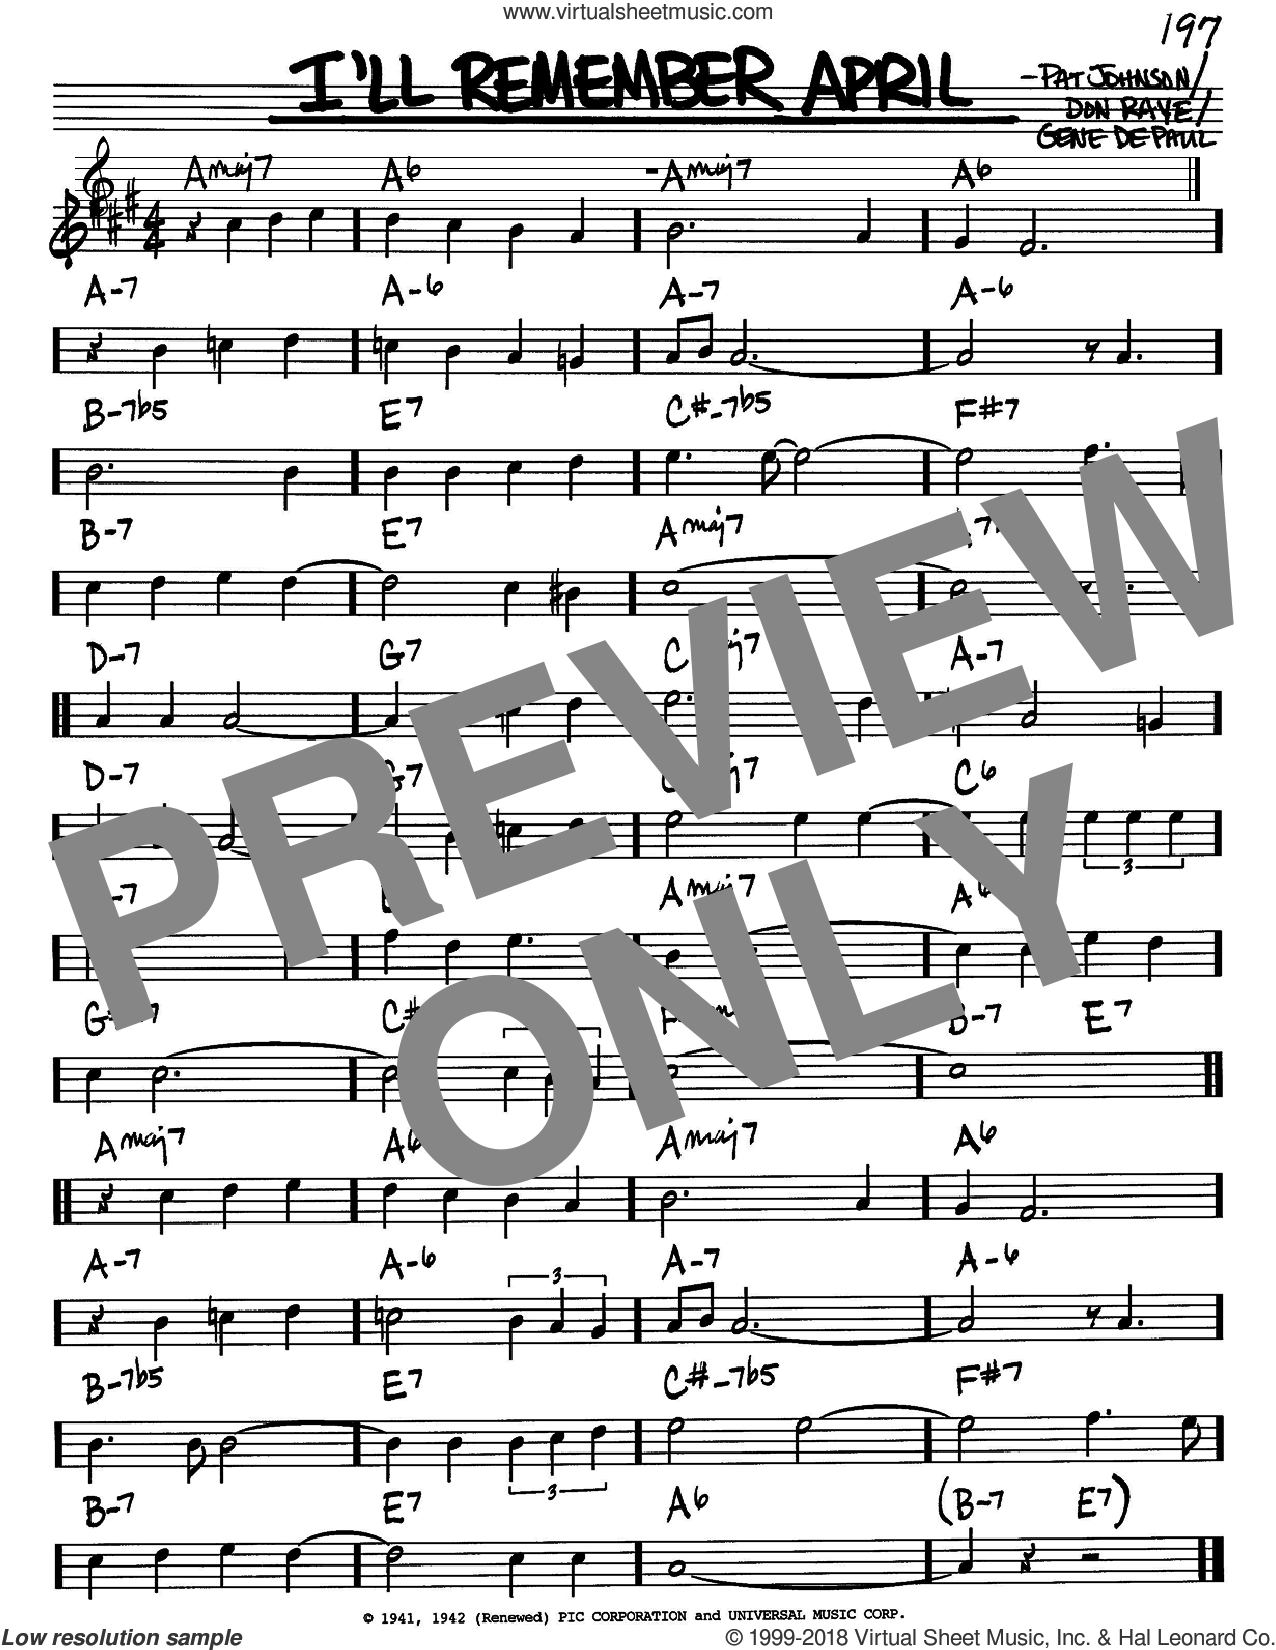 I'll Remember April sheet music for voice and other instruments (Bb) by Pat Johnson, Woody Herman, Don Raye and Gene DePaul. Score Image Preview.